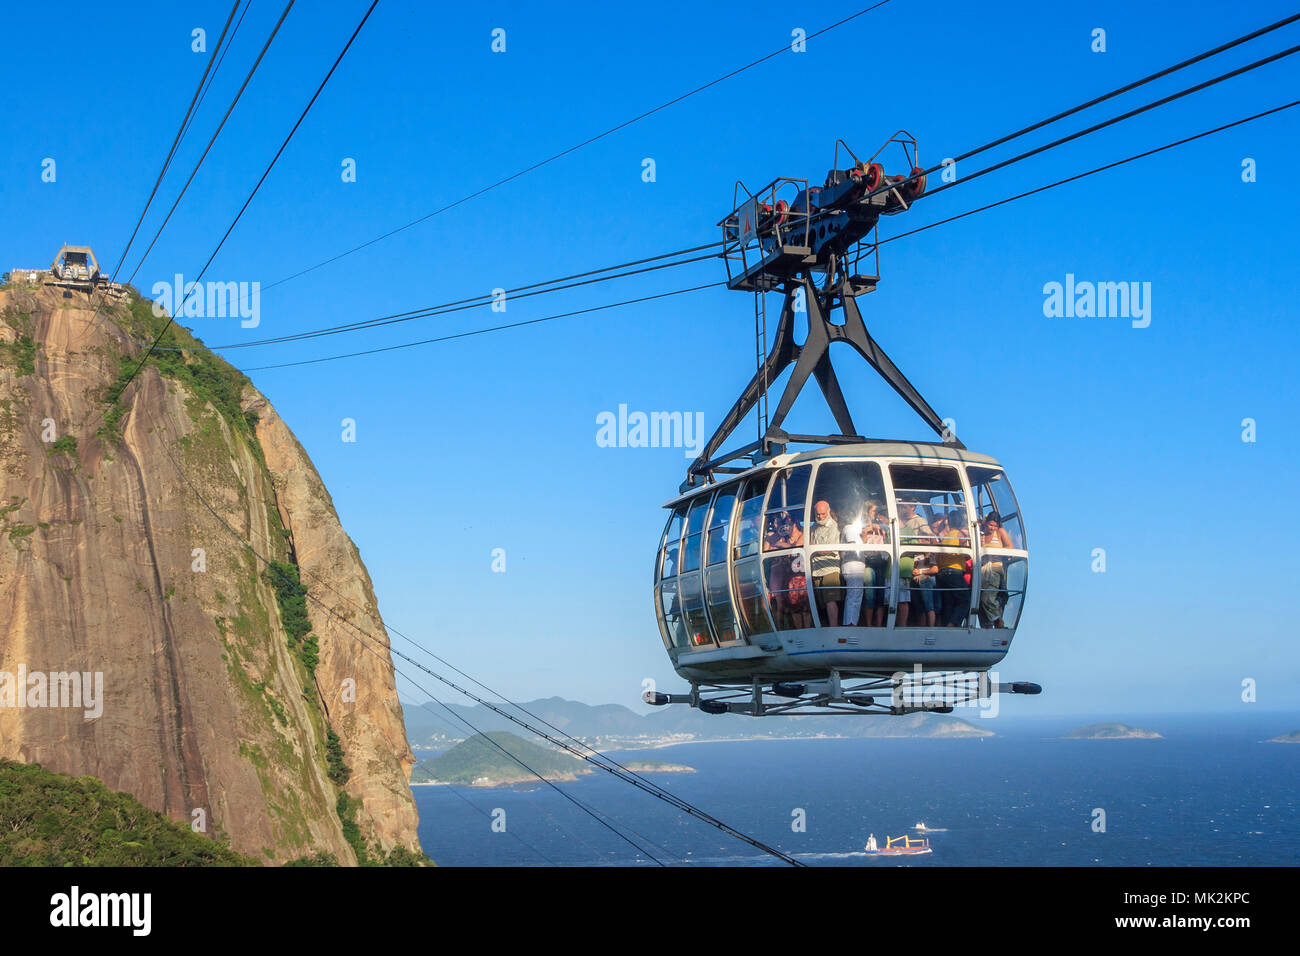 The Sugarloaf mountain cablecar, running between Morro da Urca and Sugarloaf mountain Stock Photo